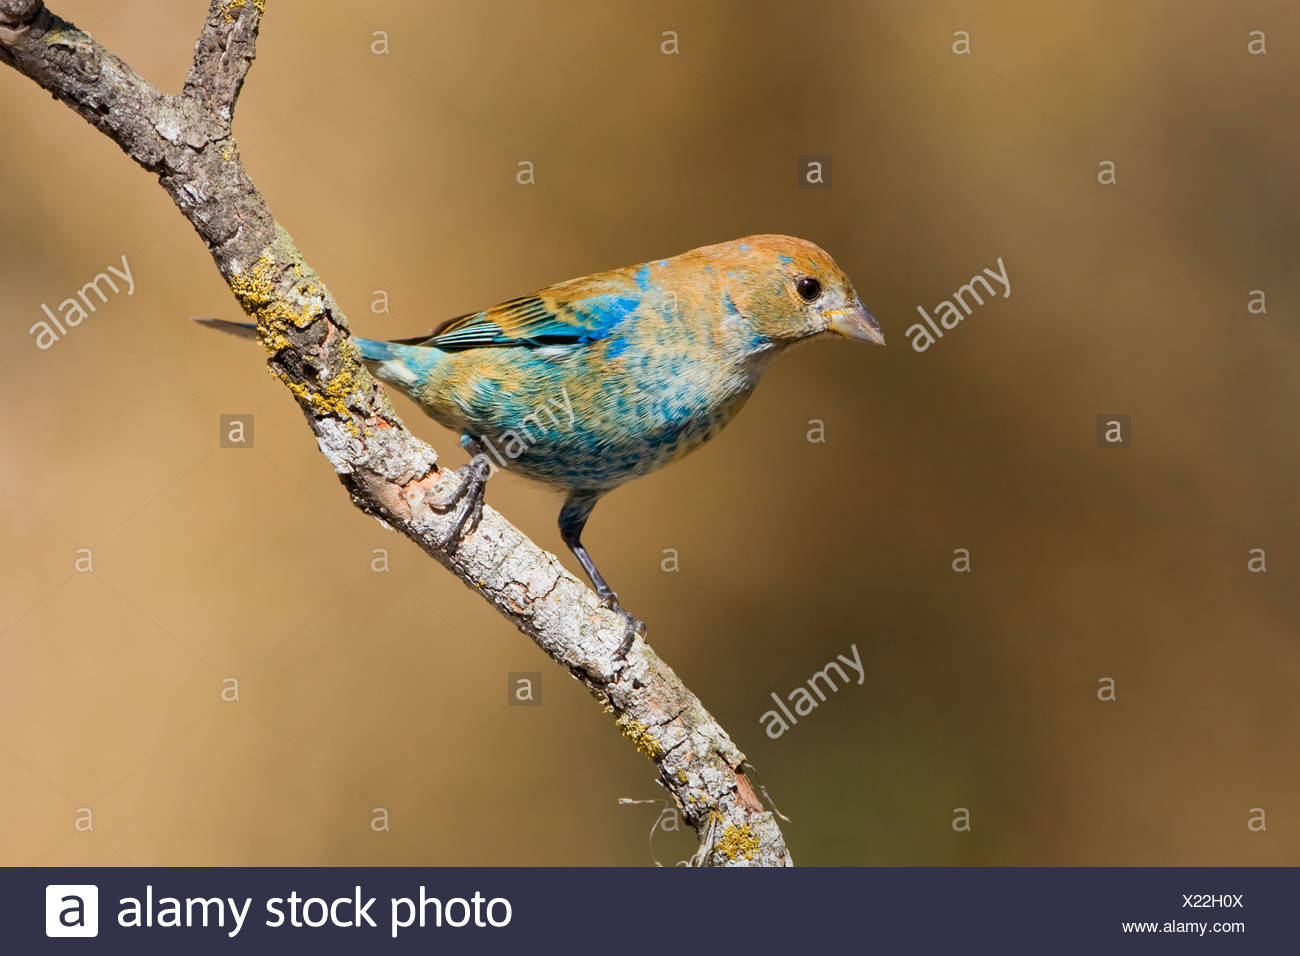 Indigo bunting (Passerina cyanea) perched on a branch near Long Point, Ontario, Canada - Stock Image